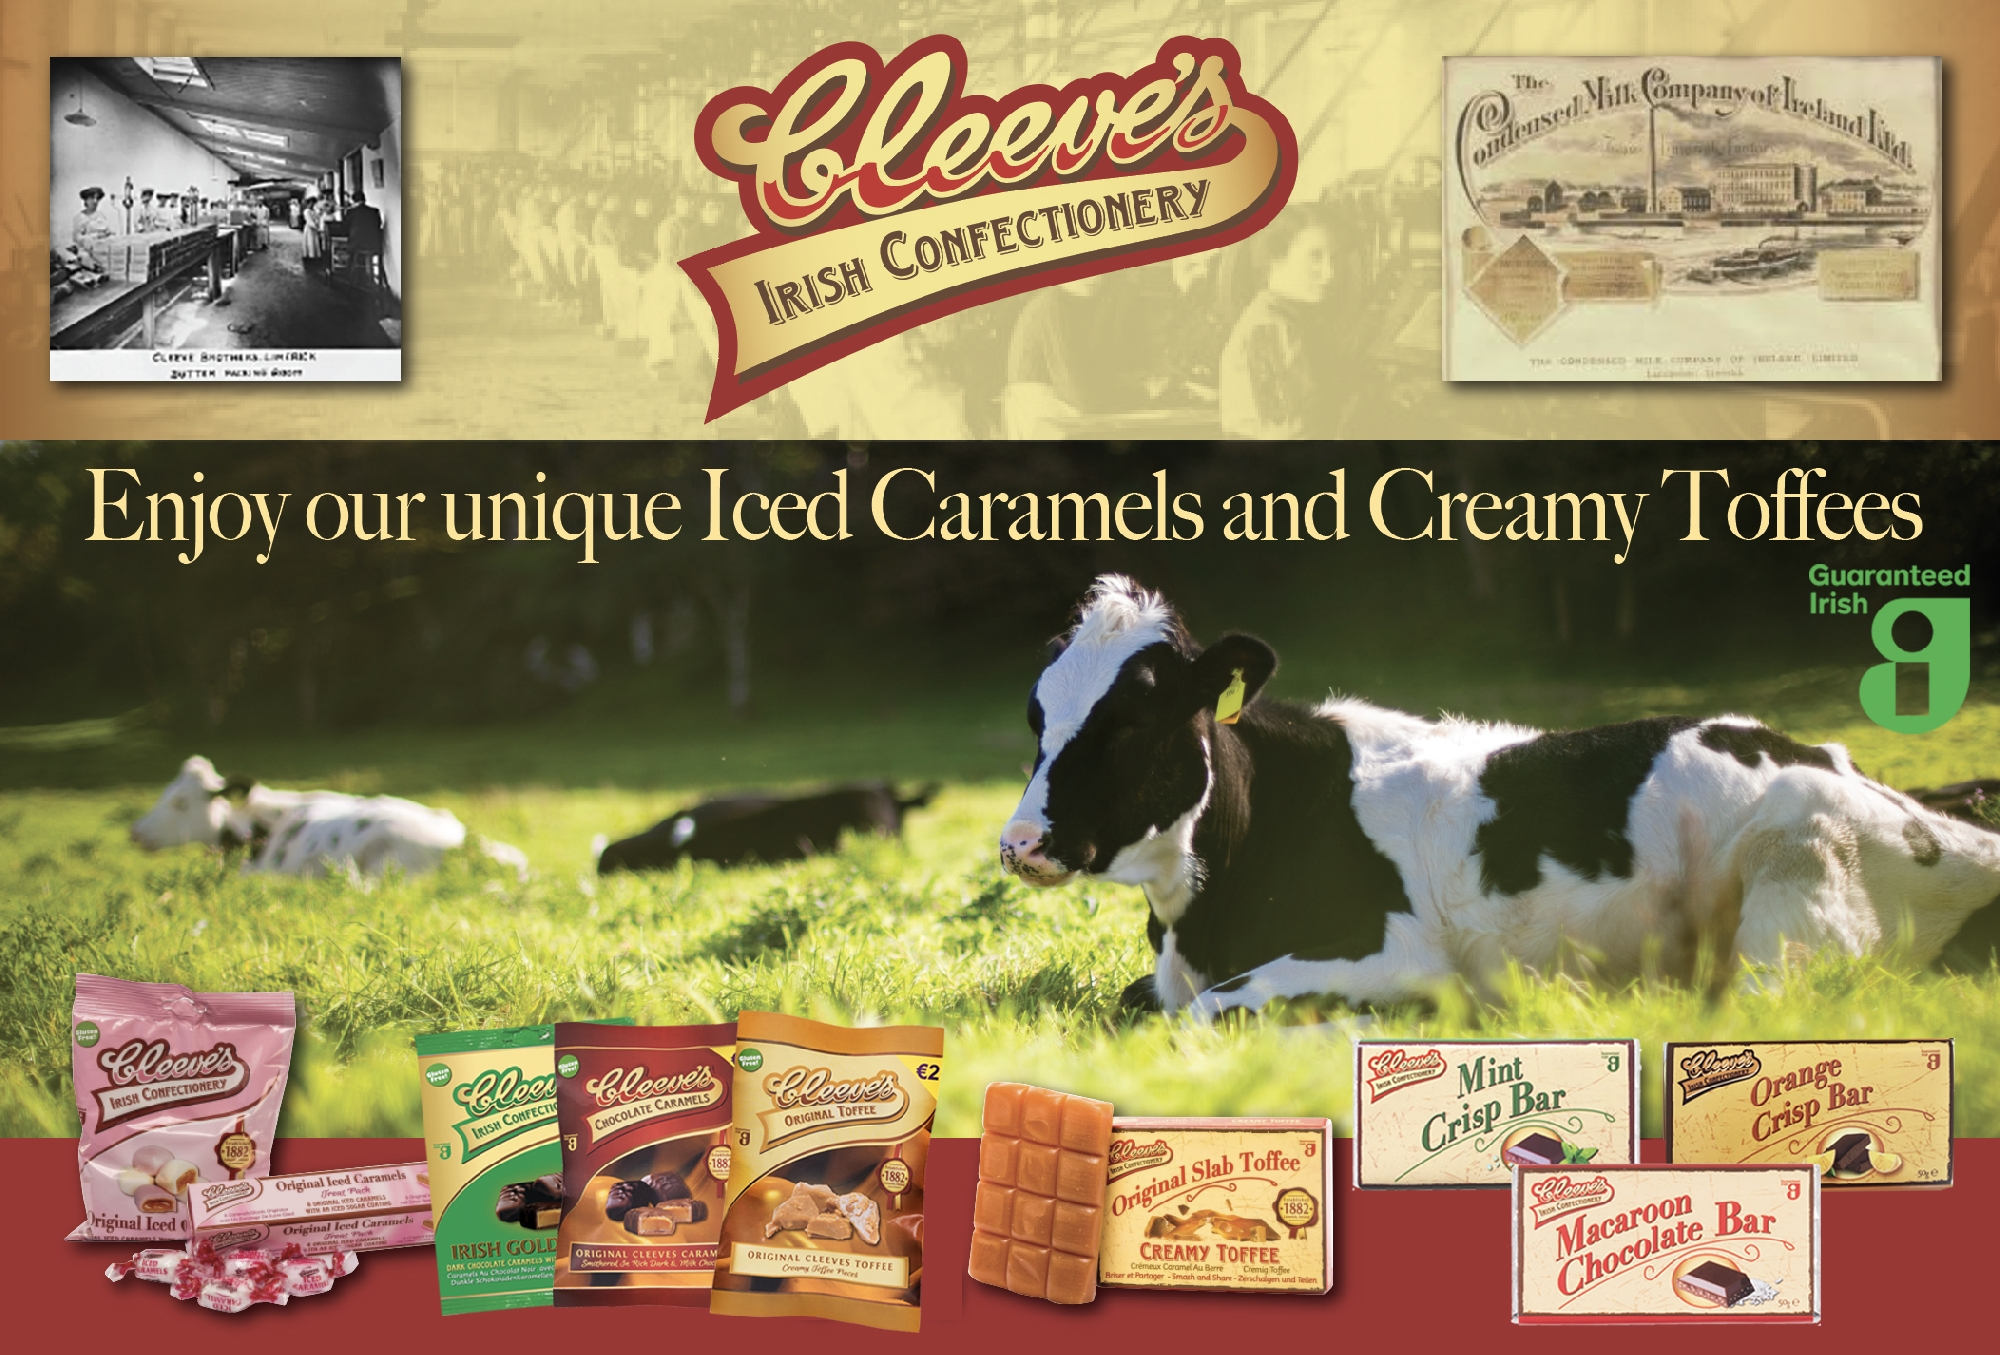 June 2020: Cleeve's; A Guaranteed Irish Brand